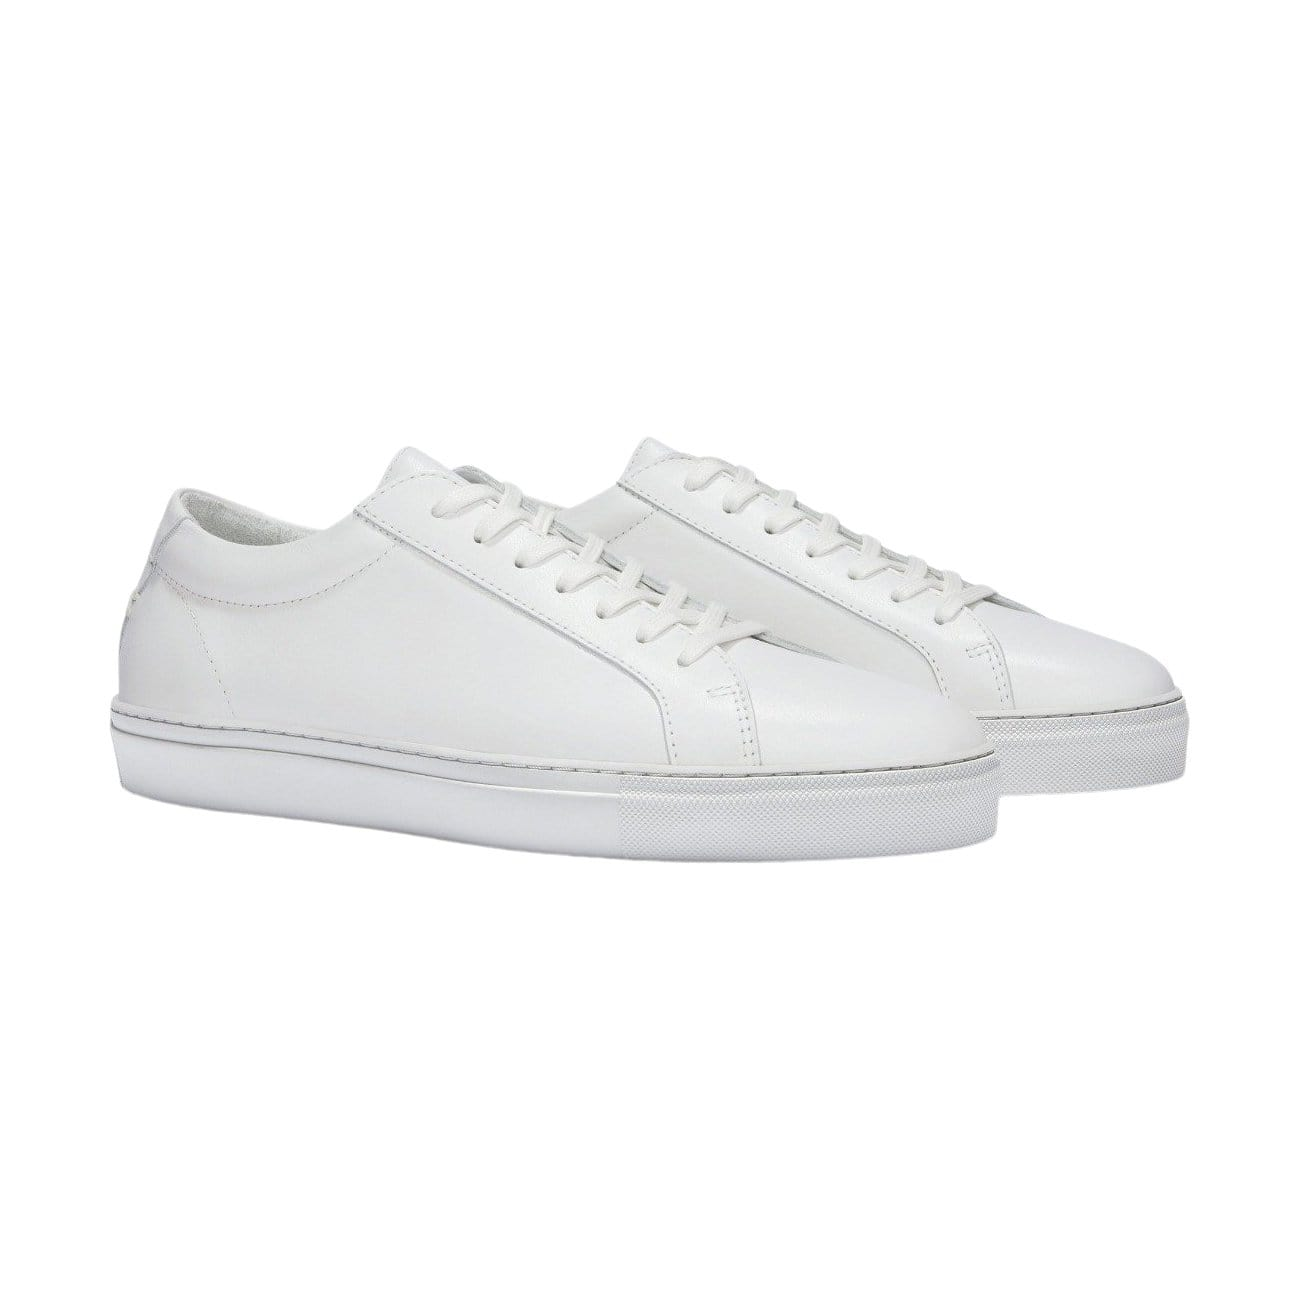 UNIFORM STANDARD SERIES 1 Women's SERIES 1 Triple White Leather Sneaker